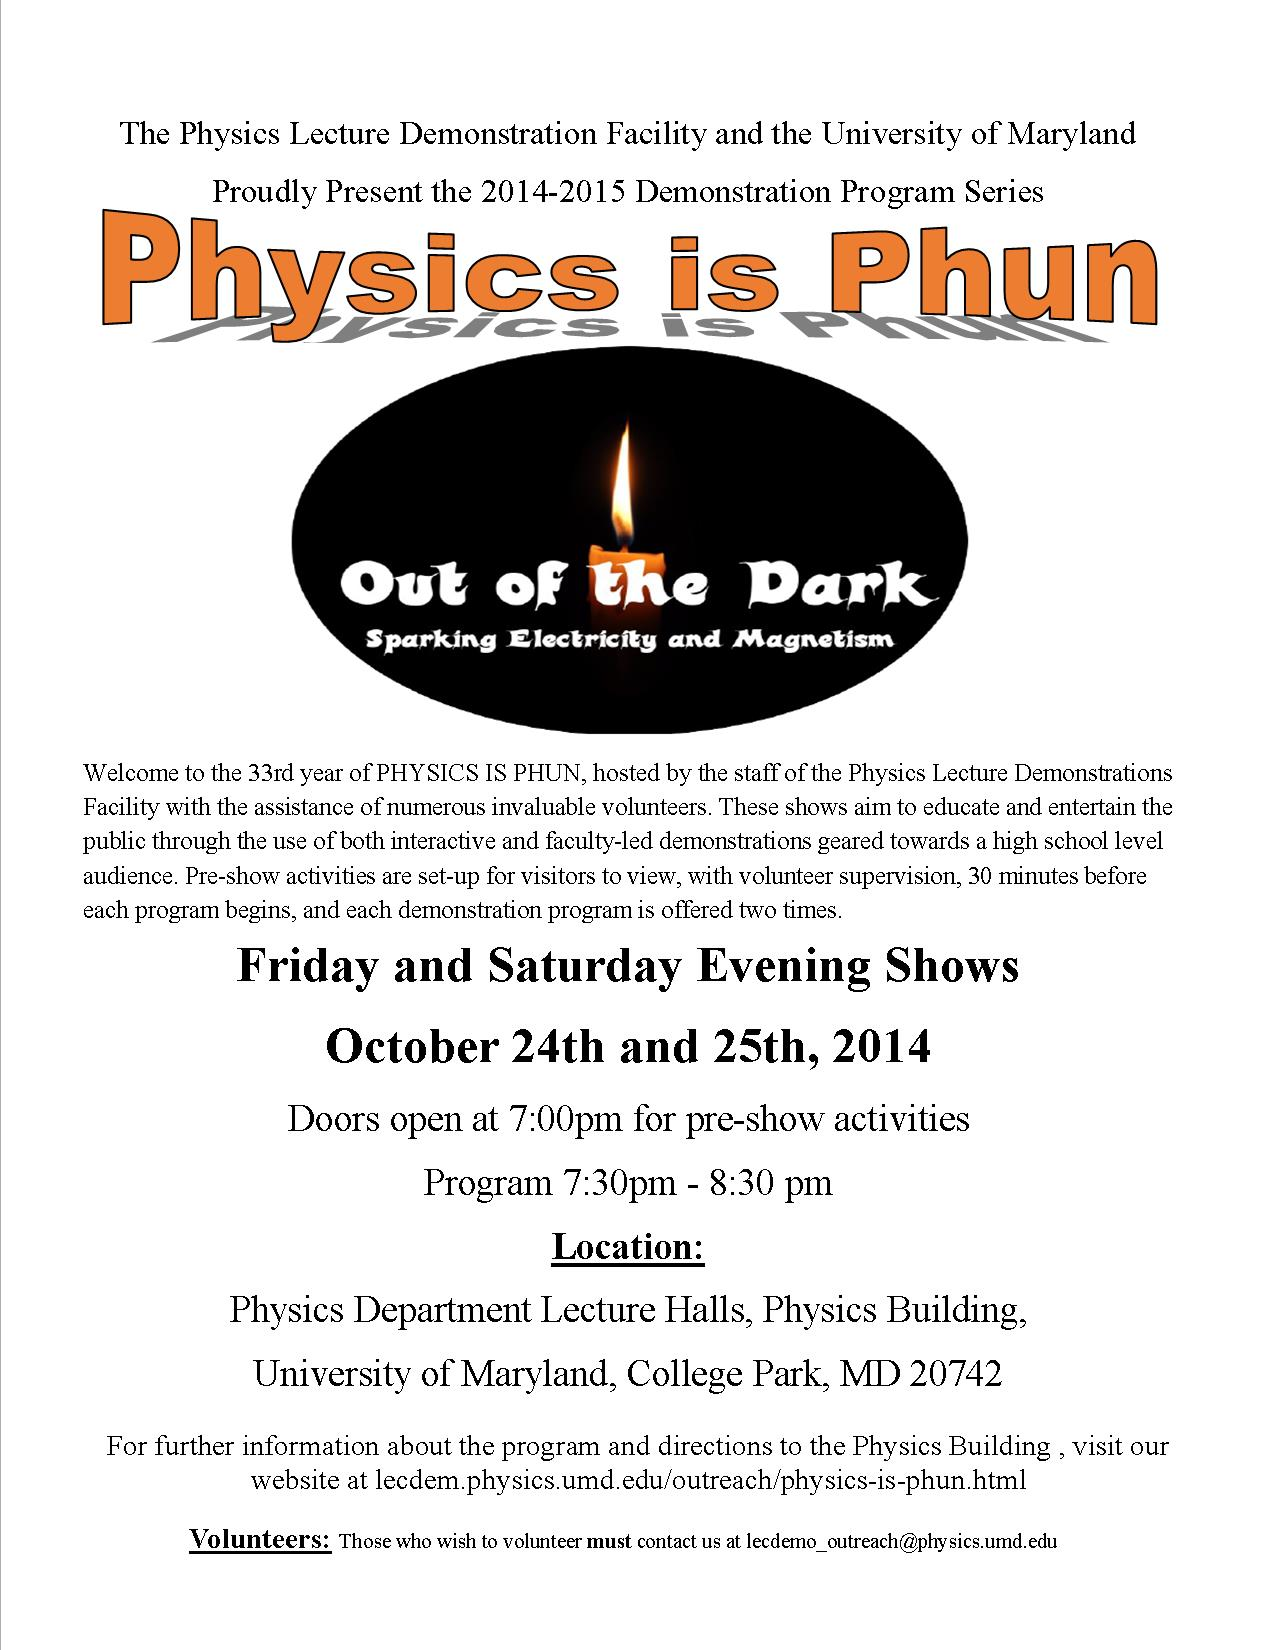 PiP Out of the Dark flyer